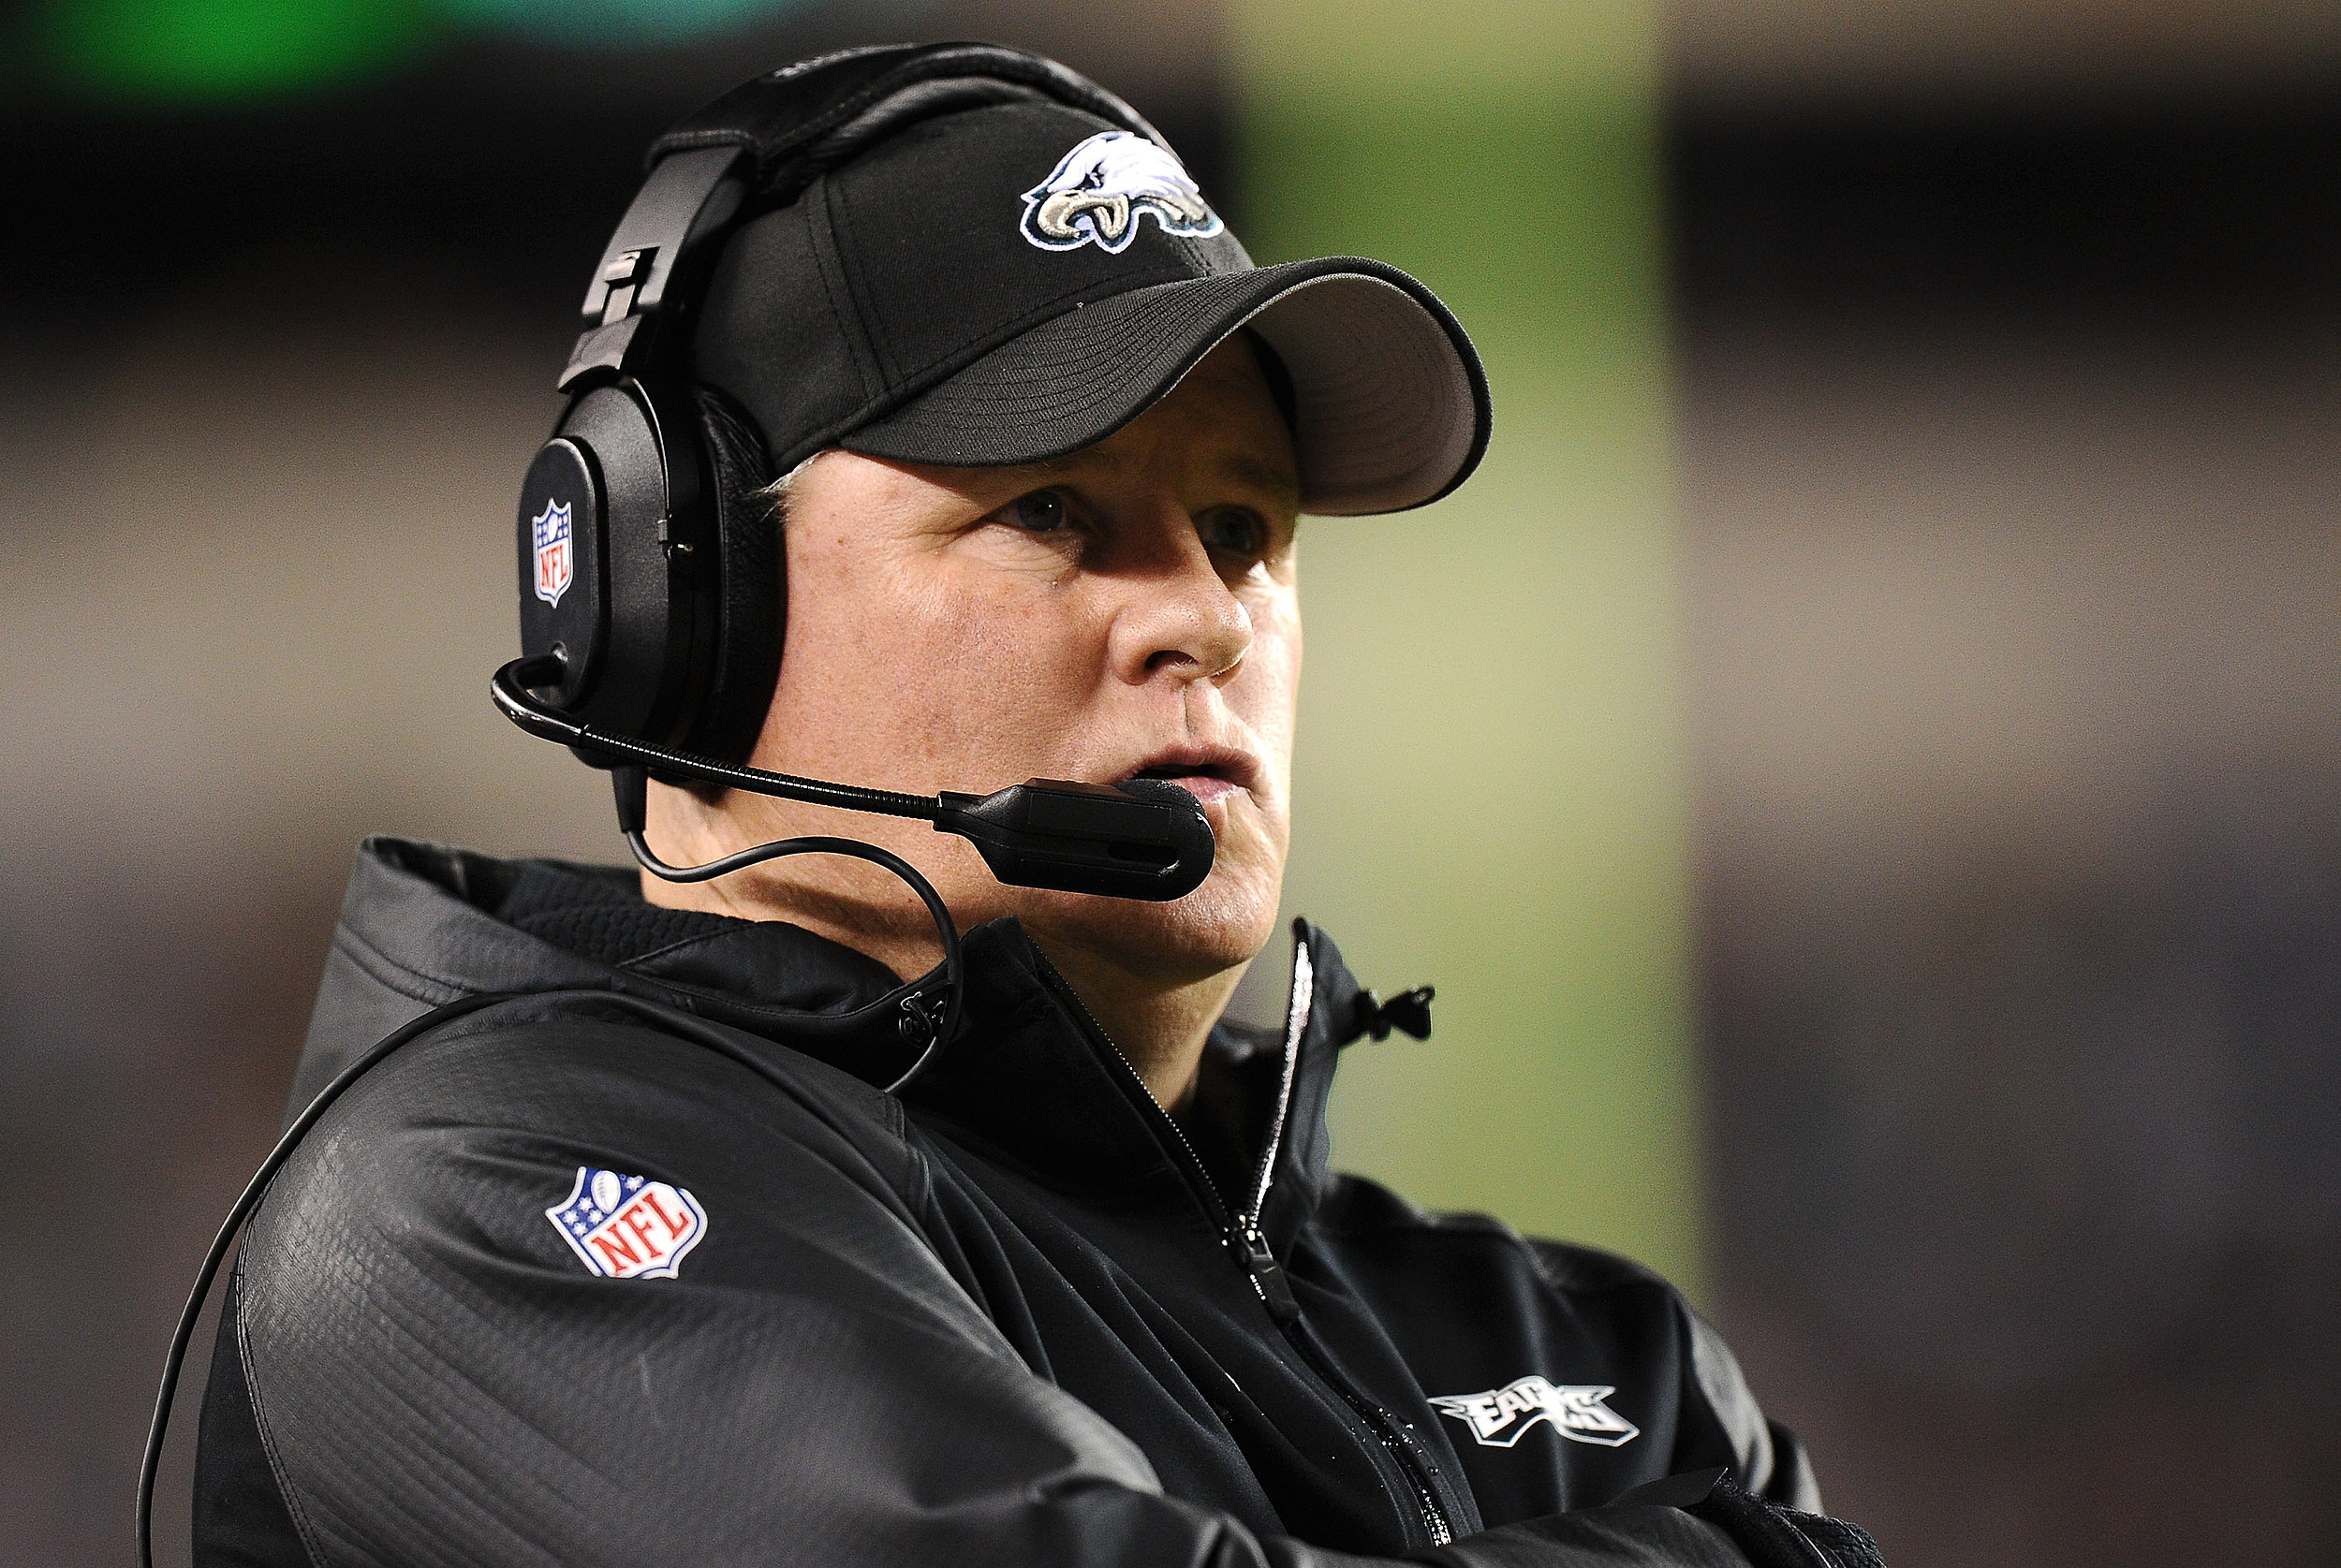 Philadelphia Eagles head coach fired 'over ruining the group's annual vacation